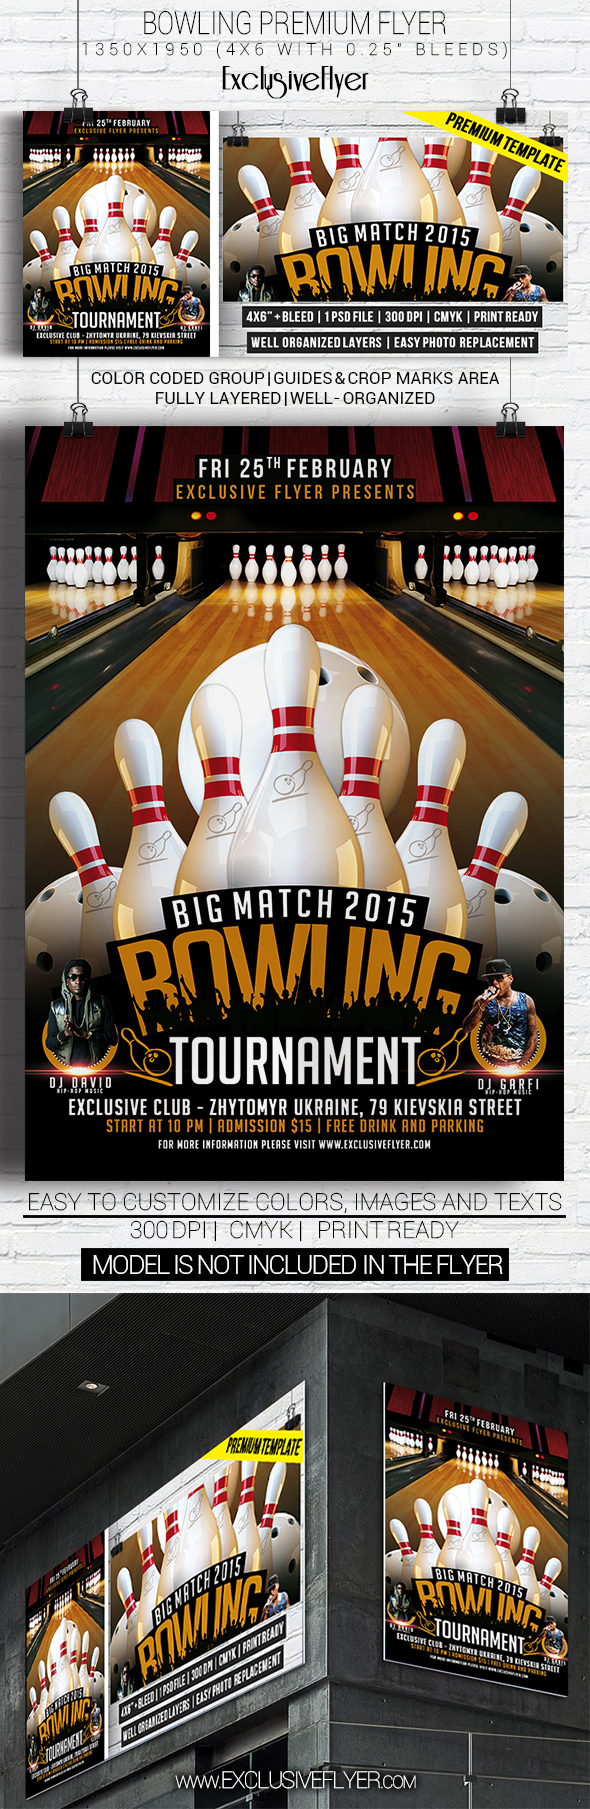 Bowling Tournament Premium Flyer Template on Behance – Sports Flyers Templates Free